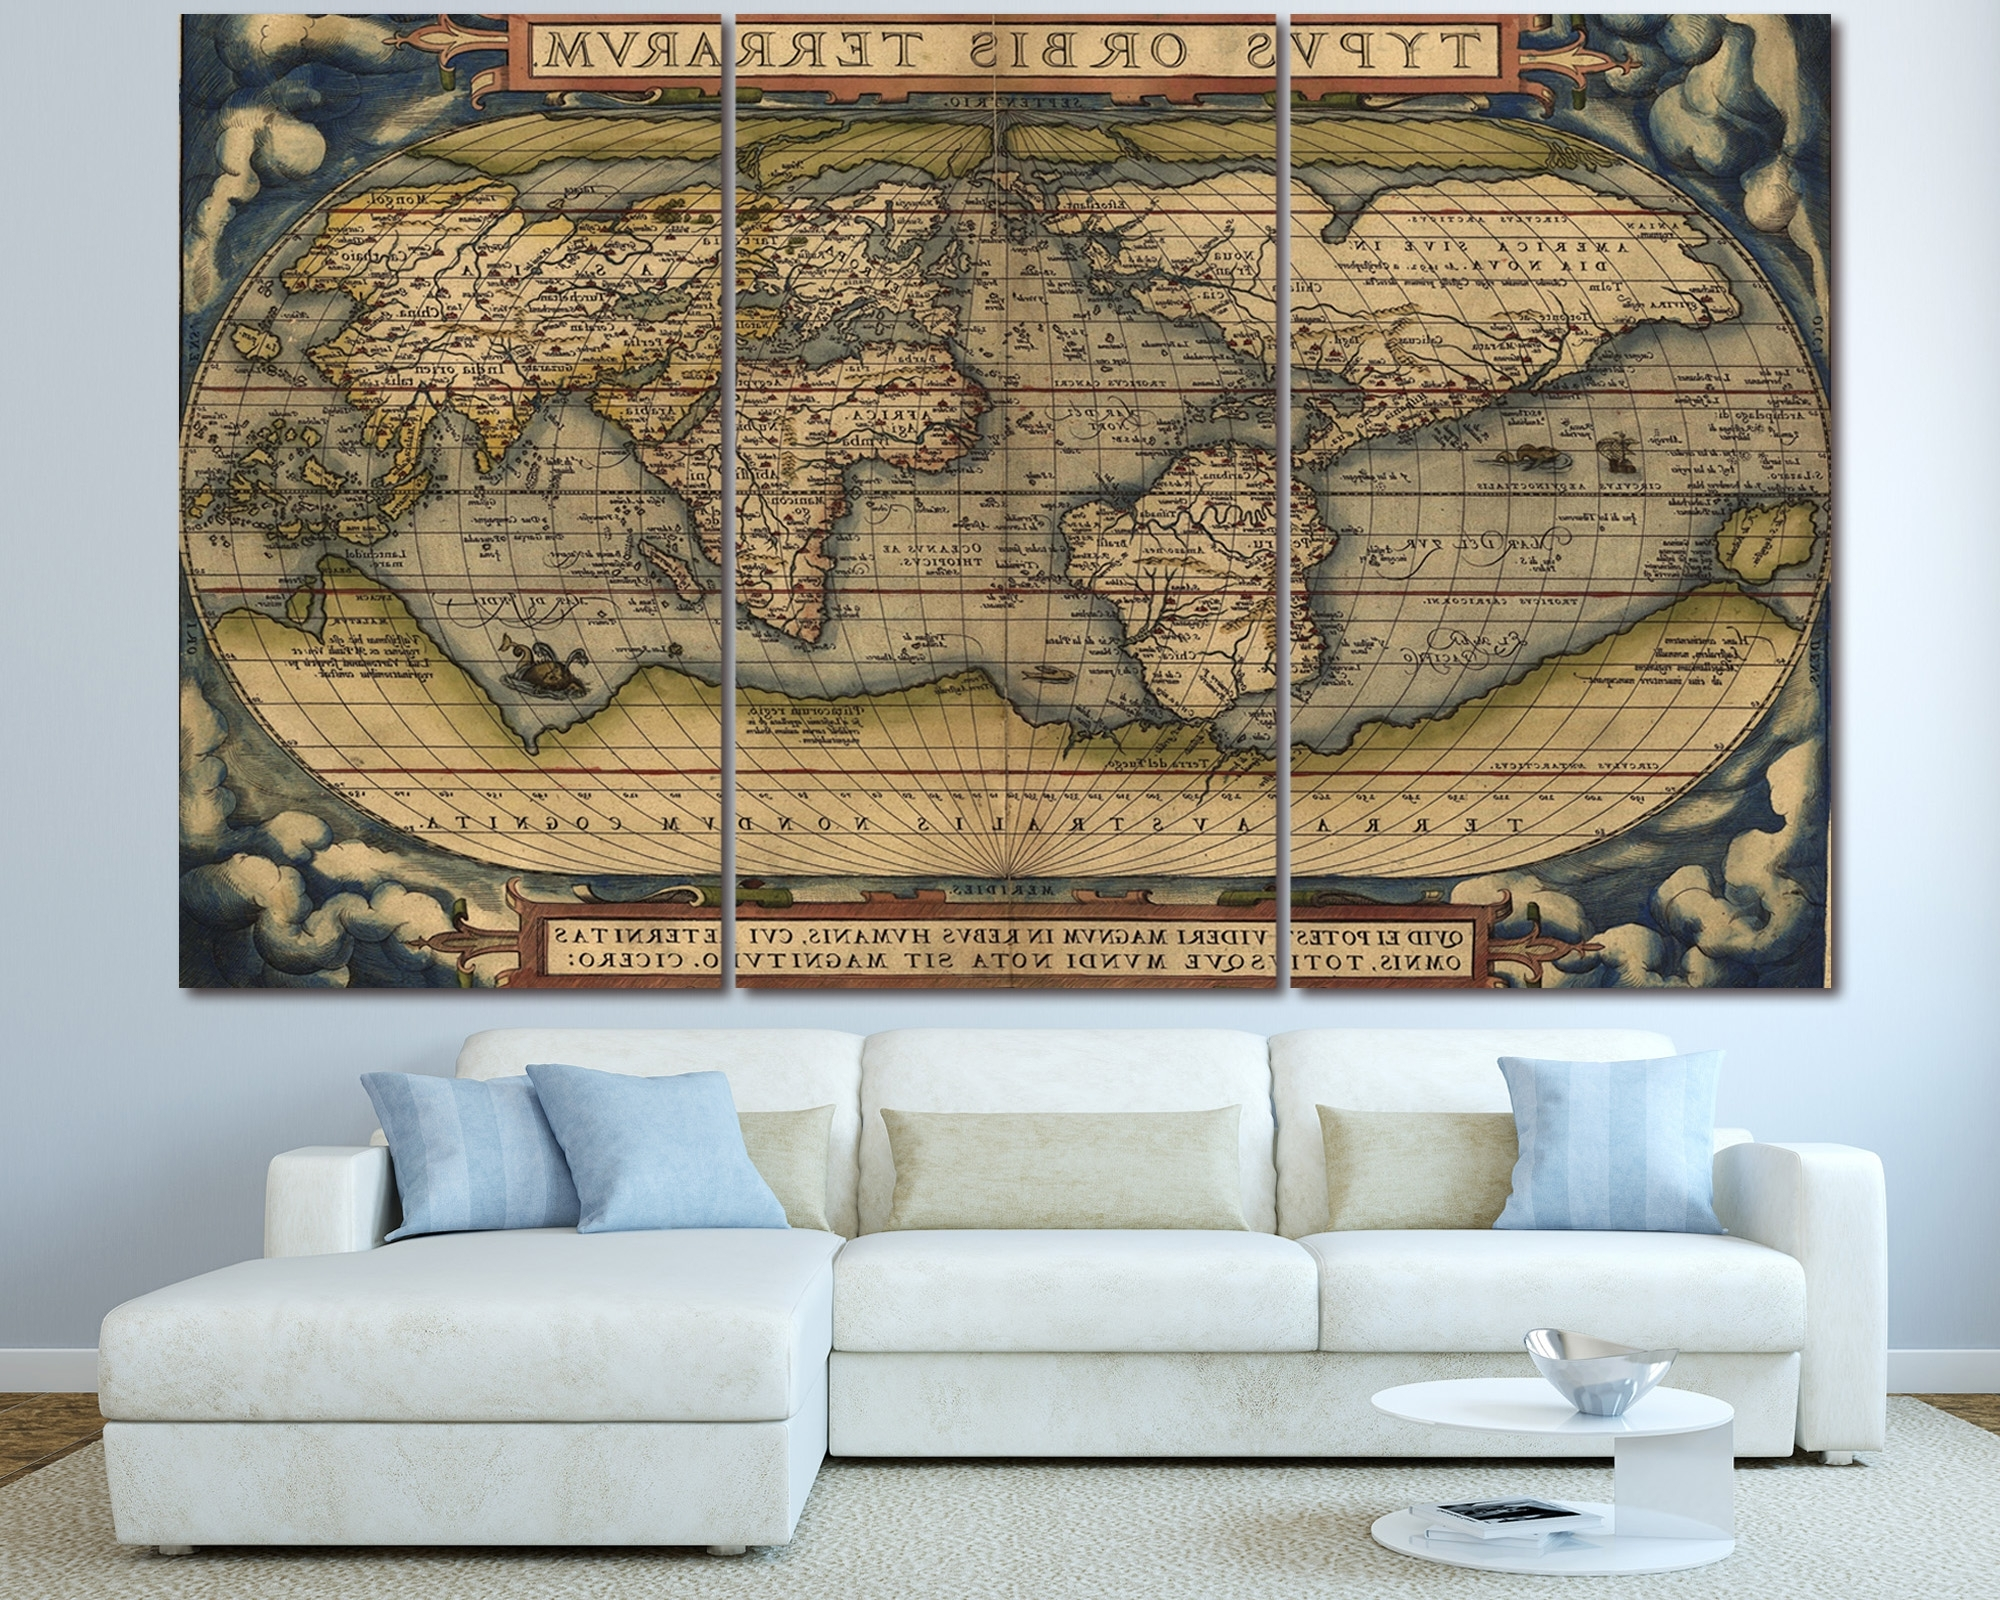 Vintage Map Wall Art Inside Well Liked Large Vintage World Map 3 Panel Wall Art At Texelprintart (Gallery 2 of 15)